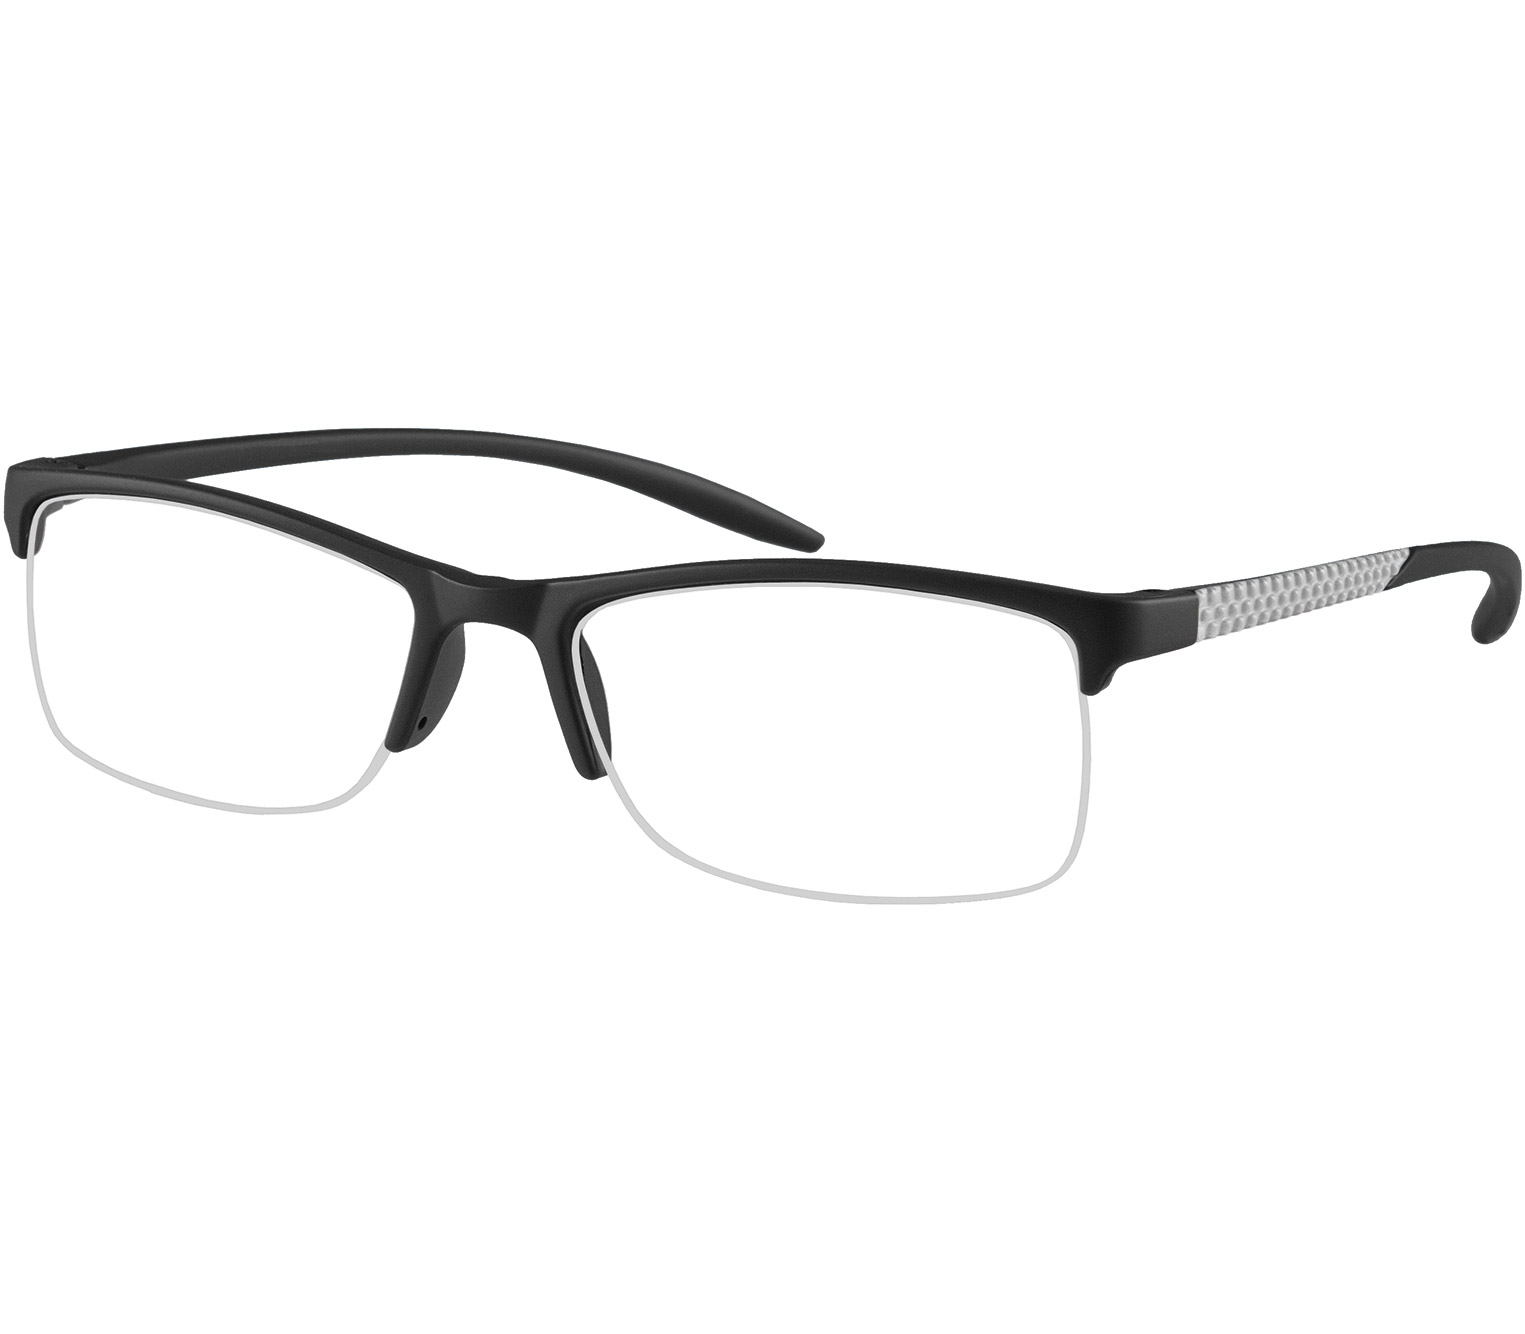 Main Image (Angle) - Solent (Black) Semi-rimless Reading Glasses